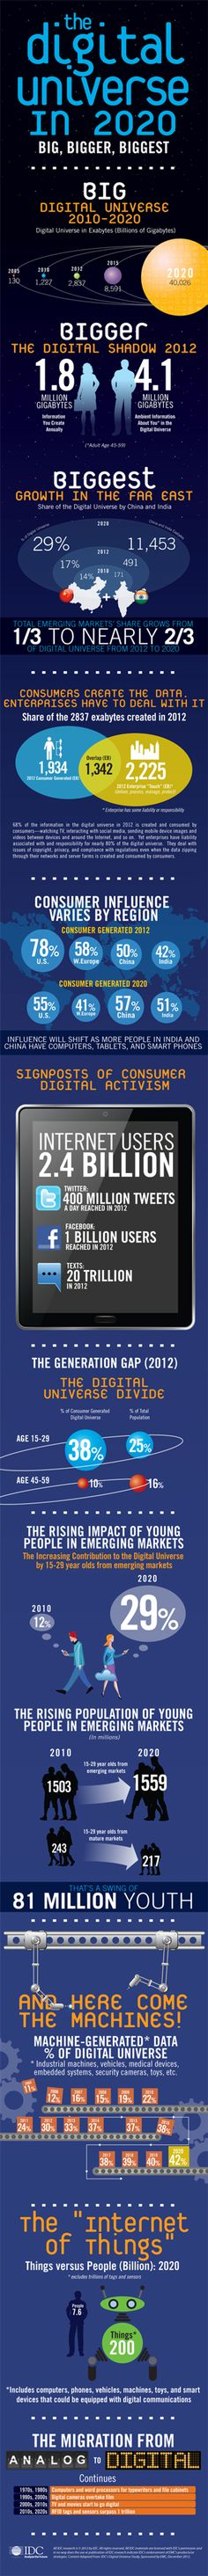 50-fold increase in the size of data globally between 2010 and 2020 (infographic)